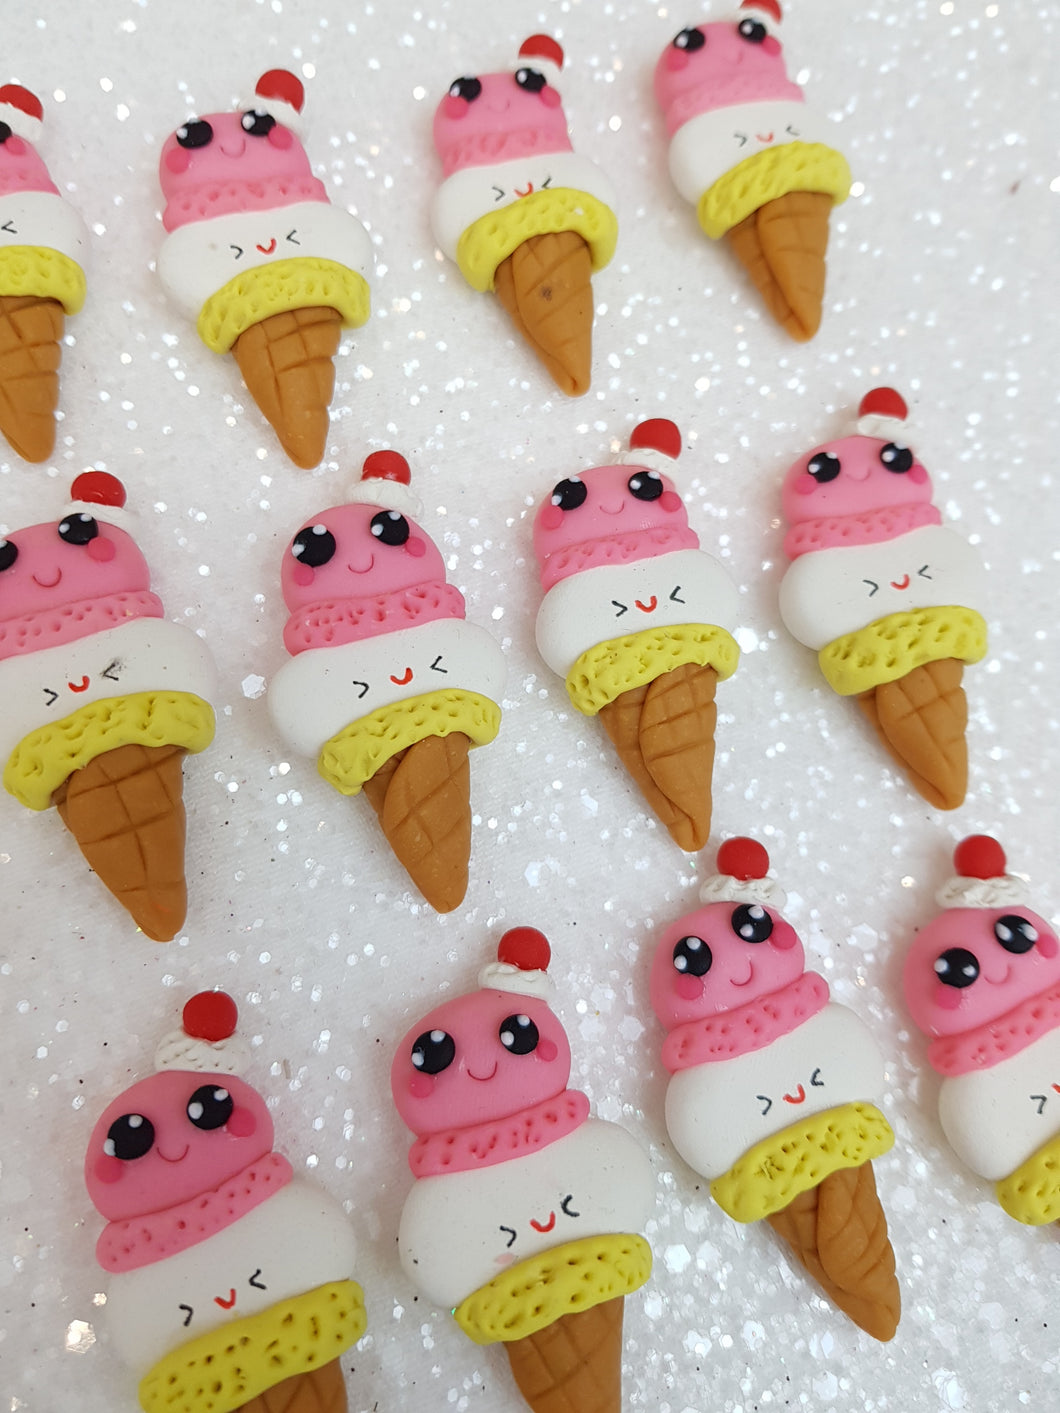 Clay Embellishment NEW ICE CREAM ST - Crafty Mood